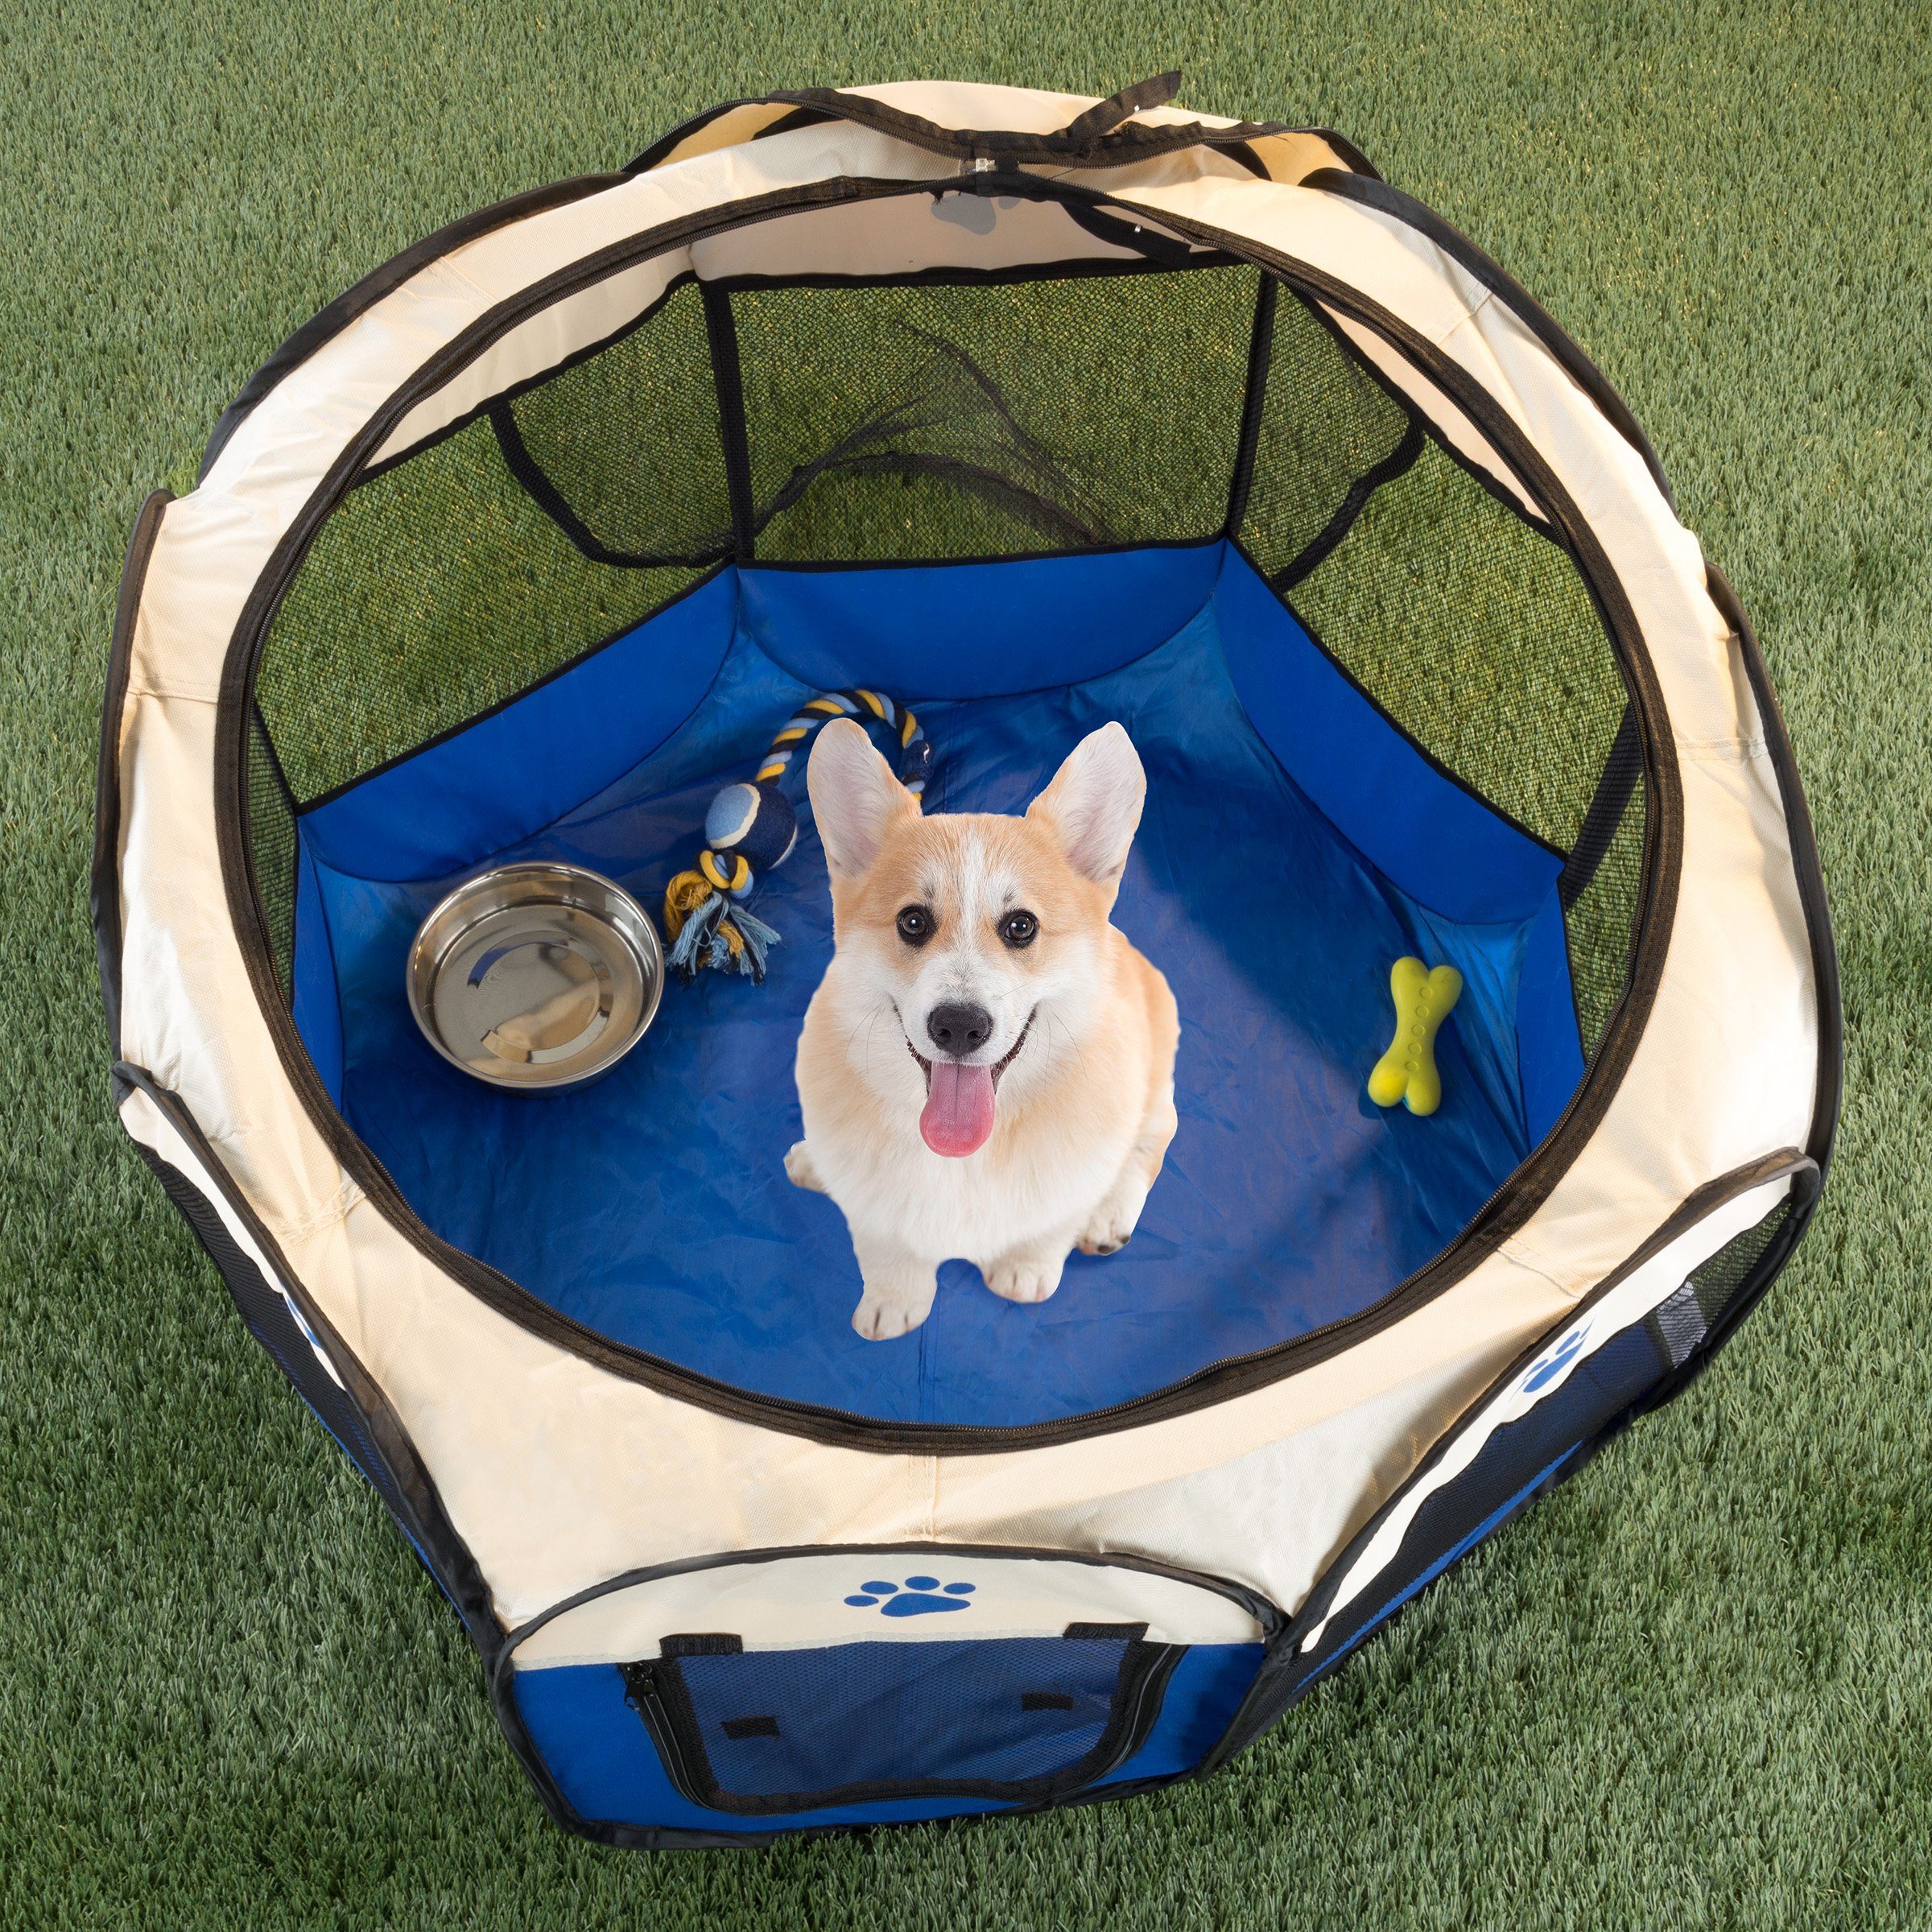 "PETMAKER Pop-Up Pet Playpen with Carrying Case for Indoor/Outdoor Use 31.5"" x 22""-Portable for Travel-Great for Dogs, Cats, Small Animals (Blue)"